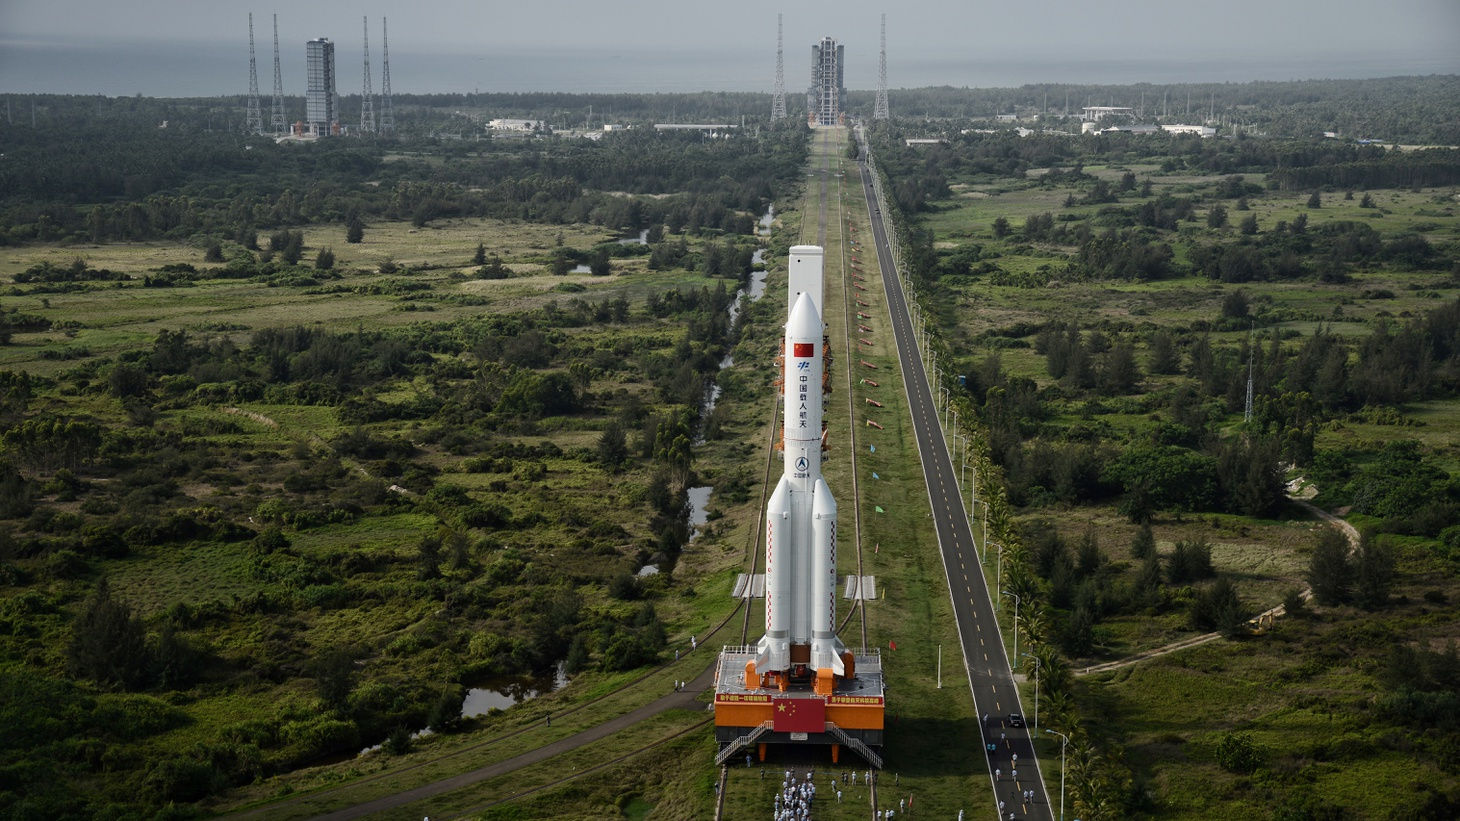 The Long March 5B carrier rocket takes off from Wenchang Space Launch Center in Wenchang, Hainan Province, China, May 5, 2020.